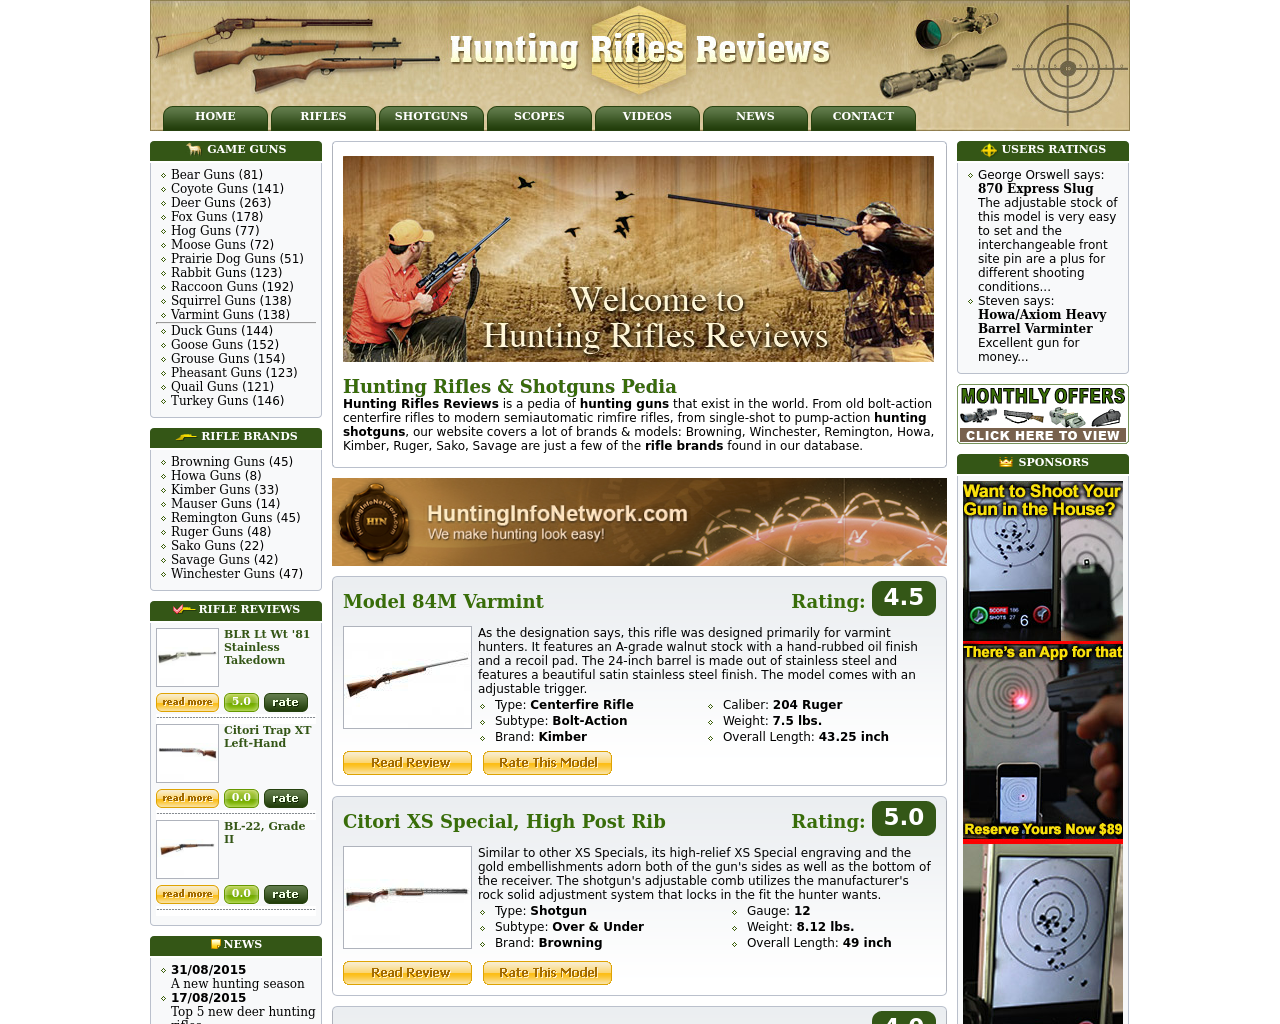 Hunting-Rifles-Reviews-Advertising-Reviews-Pricing